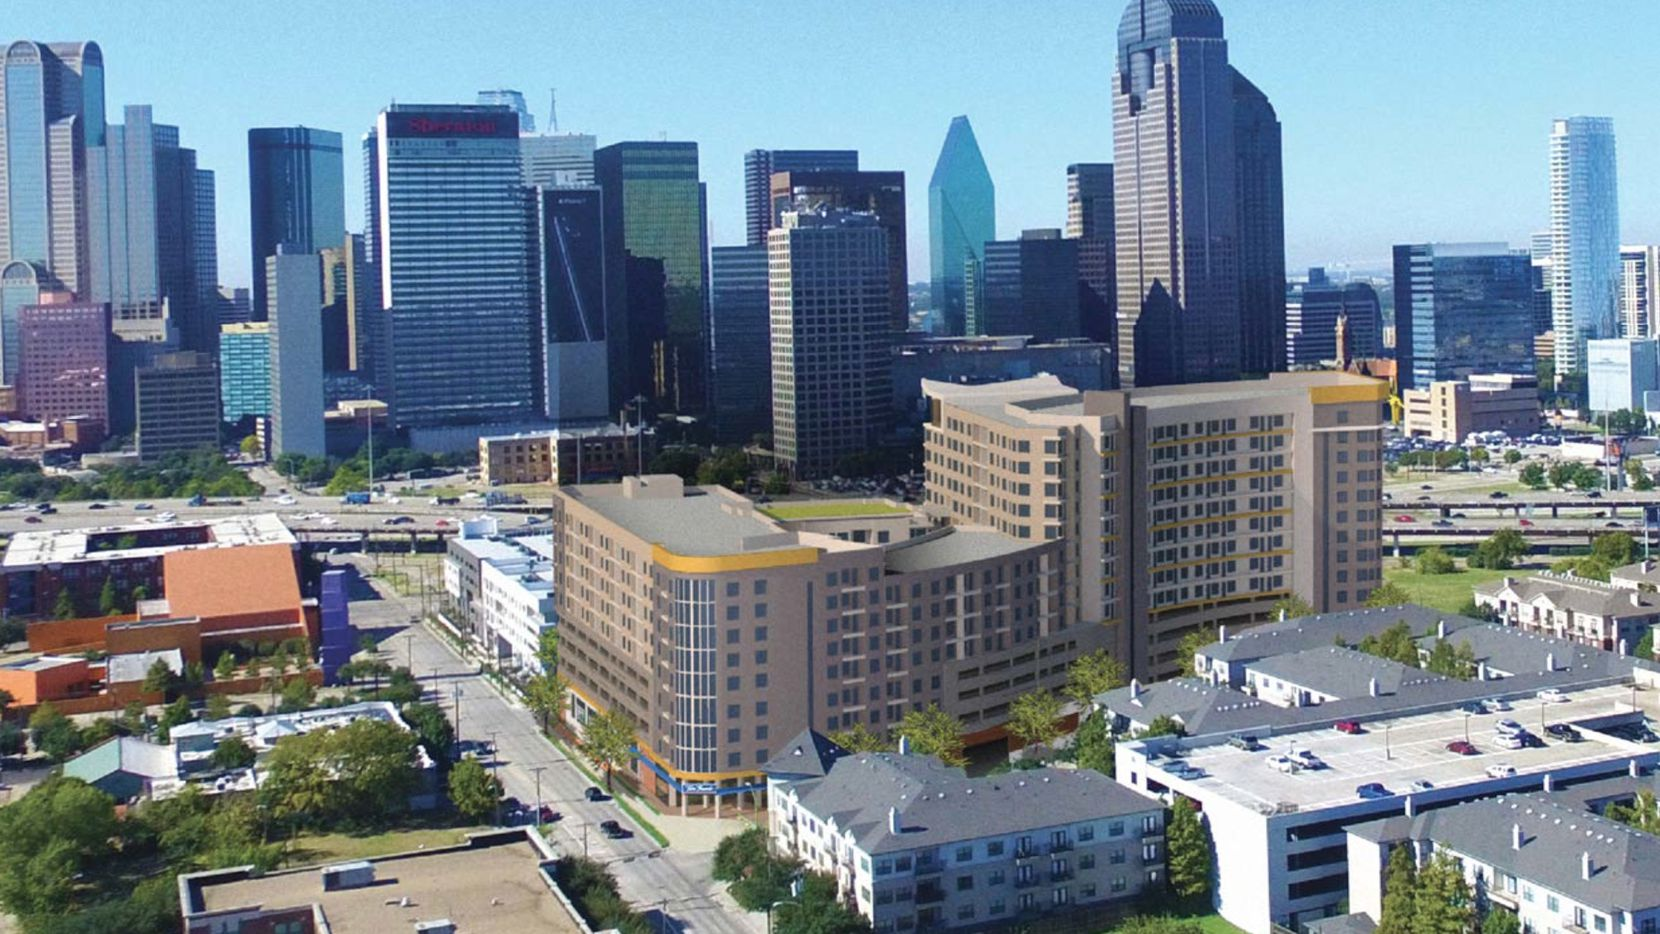 Developer Greystar is building a 10-story apartment and retail tower on the east side of downtown Dallas.